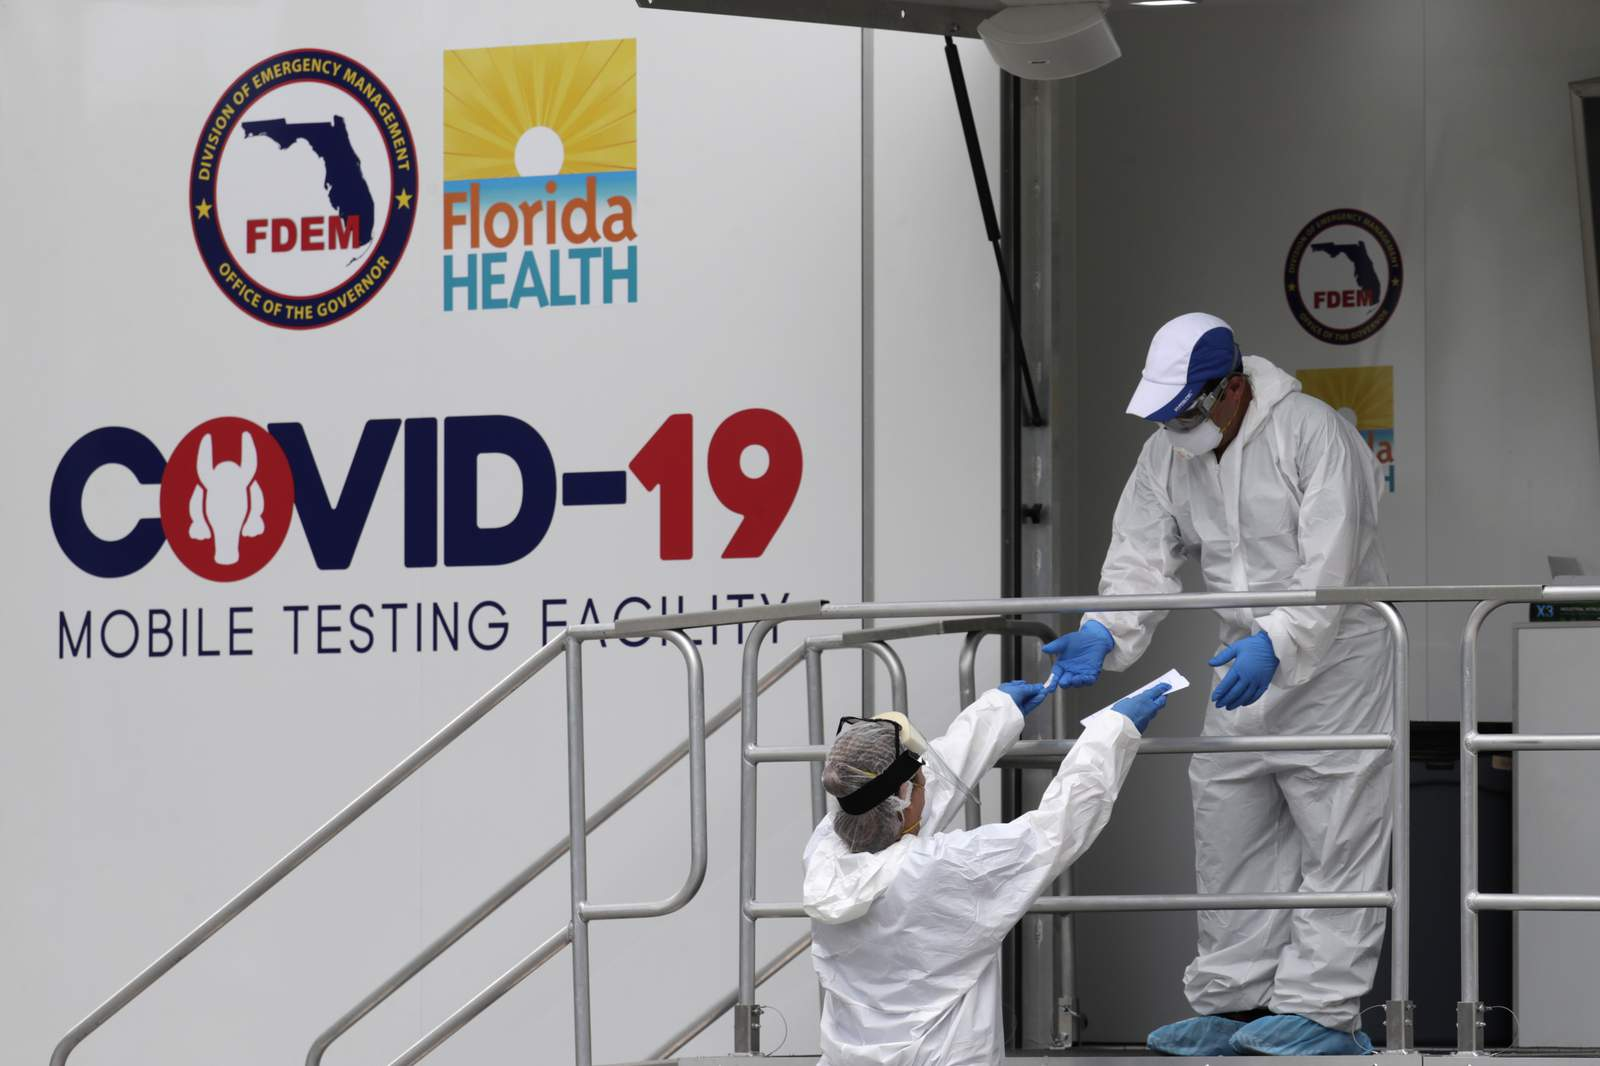 Florida now has over 5,000 deaths caused by COVID - 19